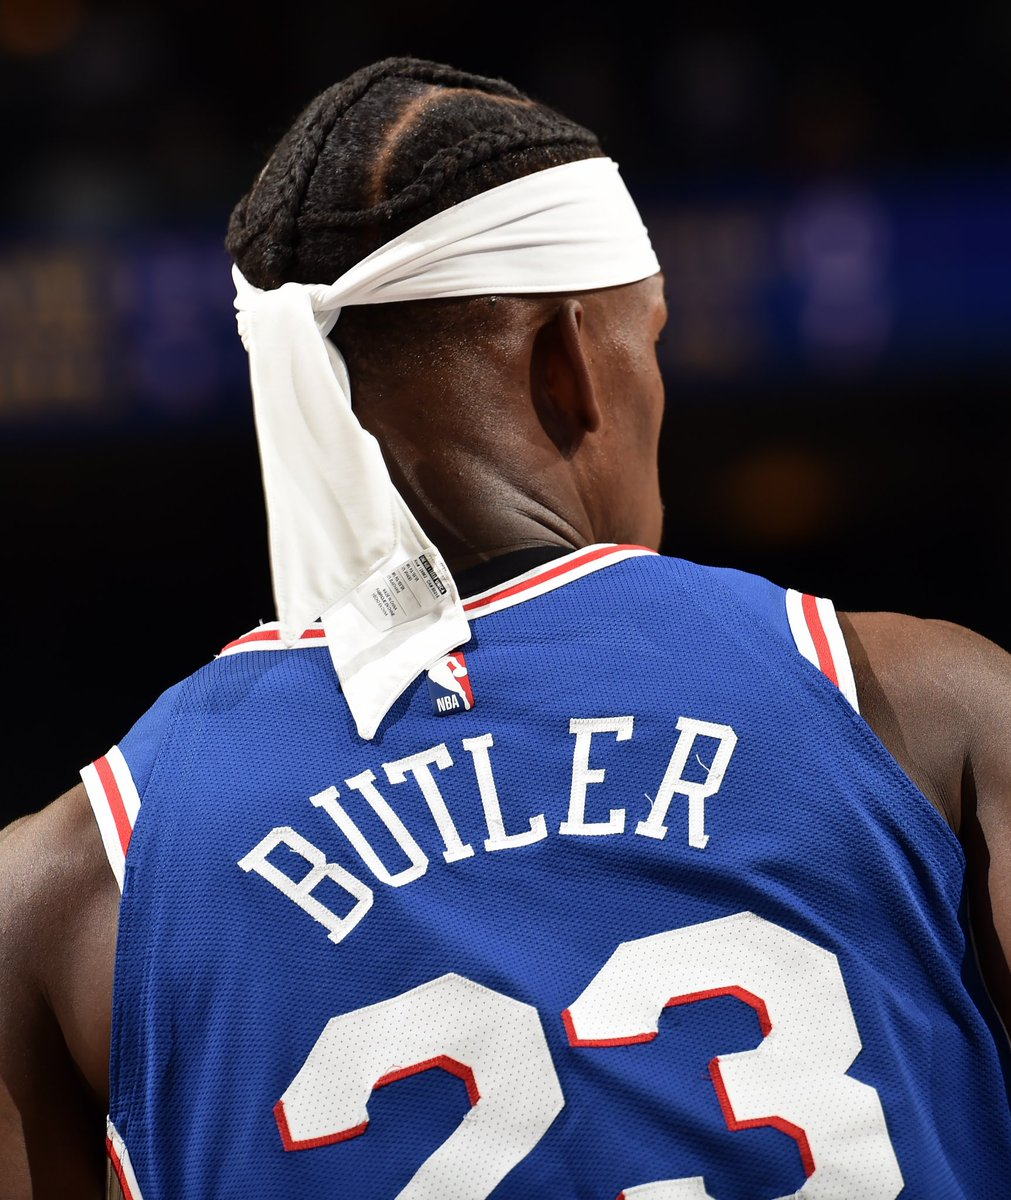 There's a new headband style in the NBA. You mess with the look?